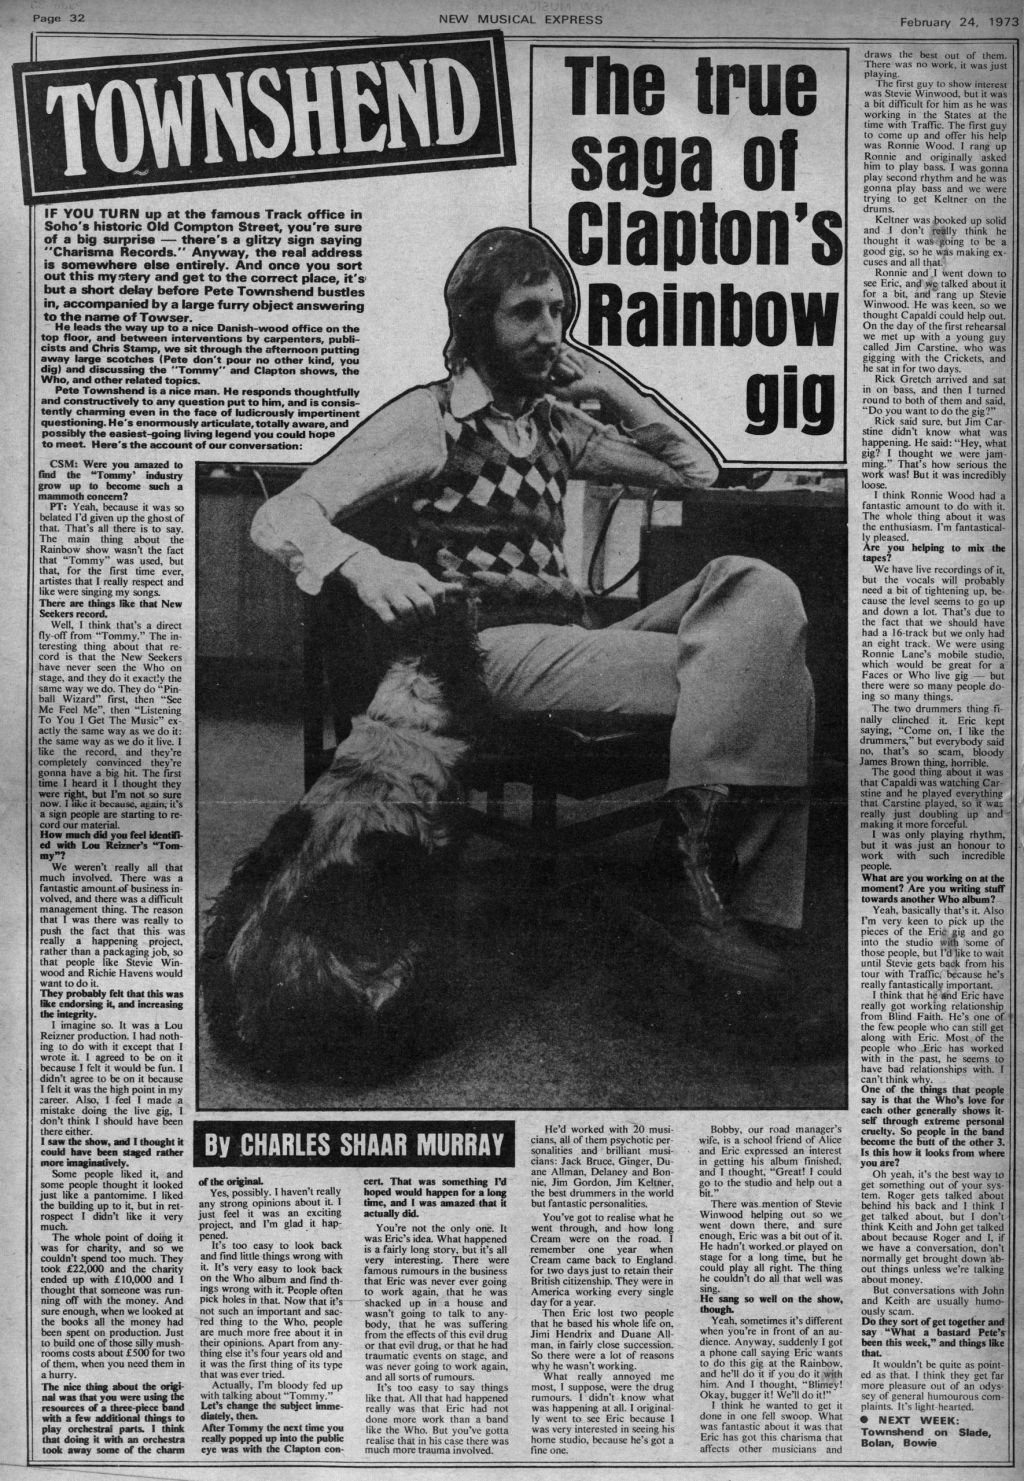 New Musical Express interview with Pete Townshend from February 24, 1973